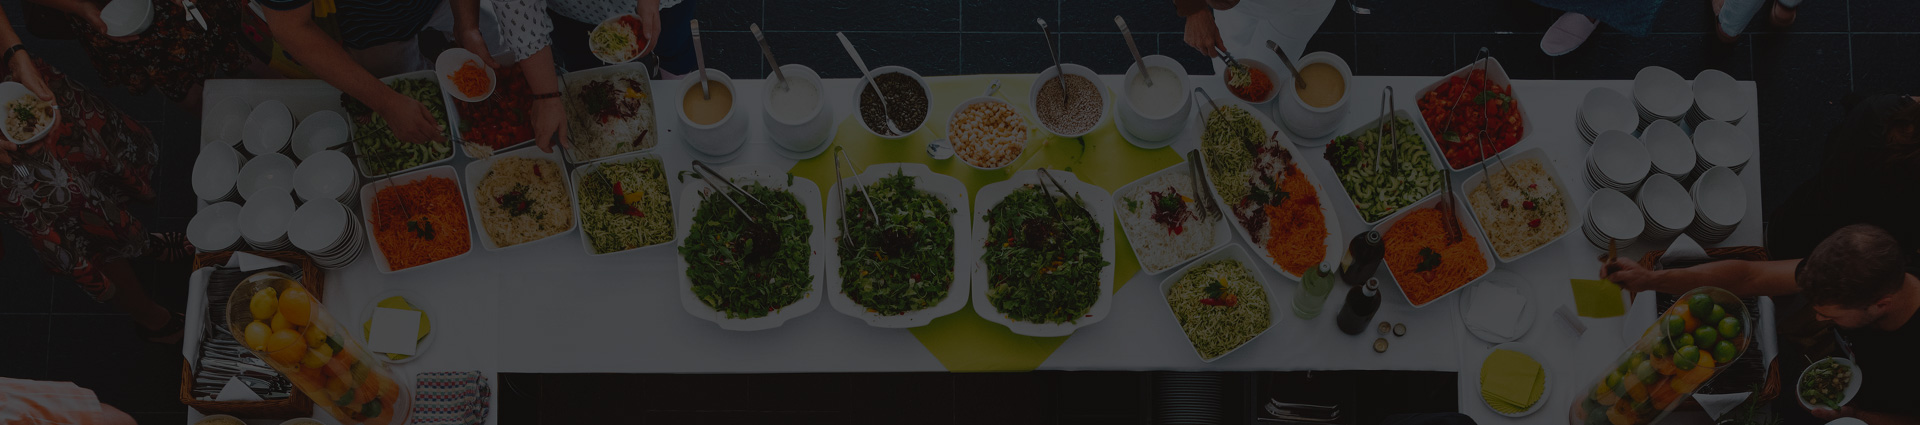 baner catering